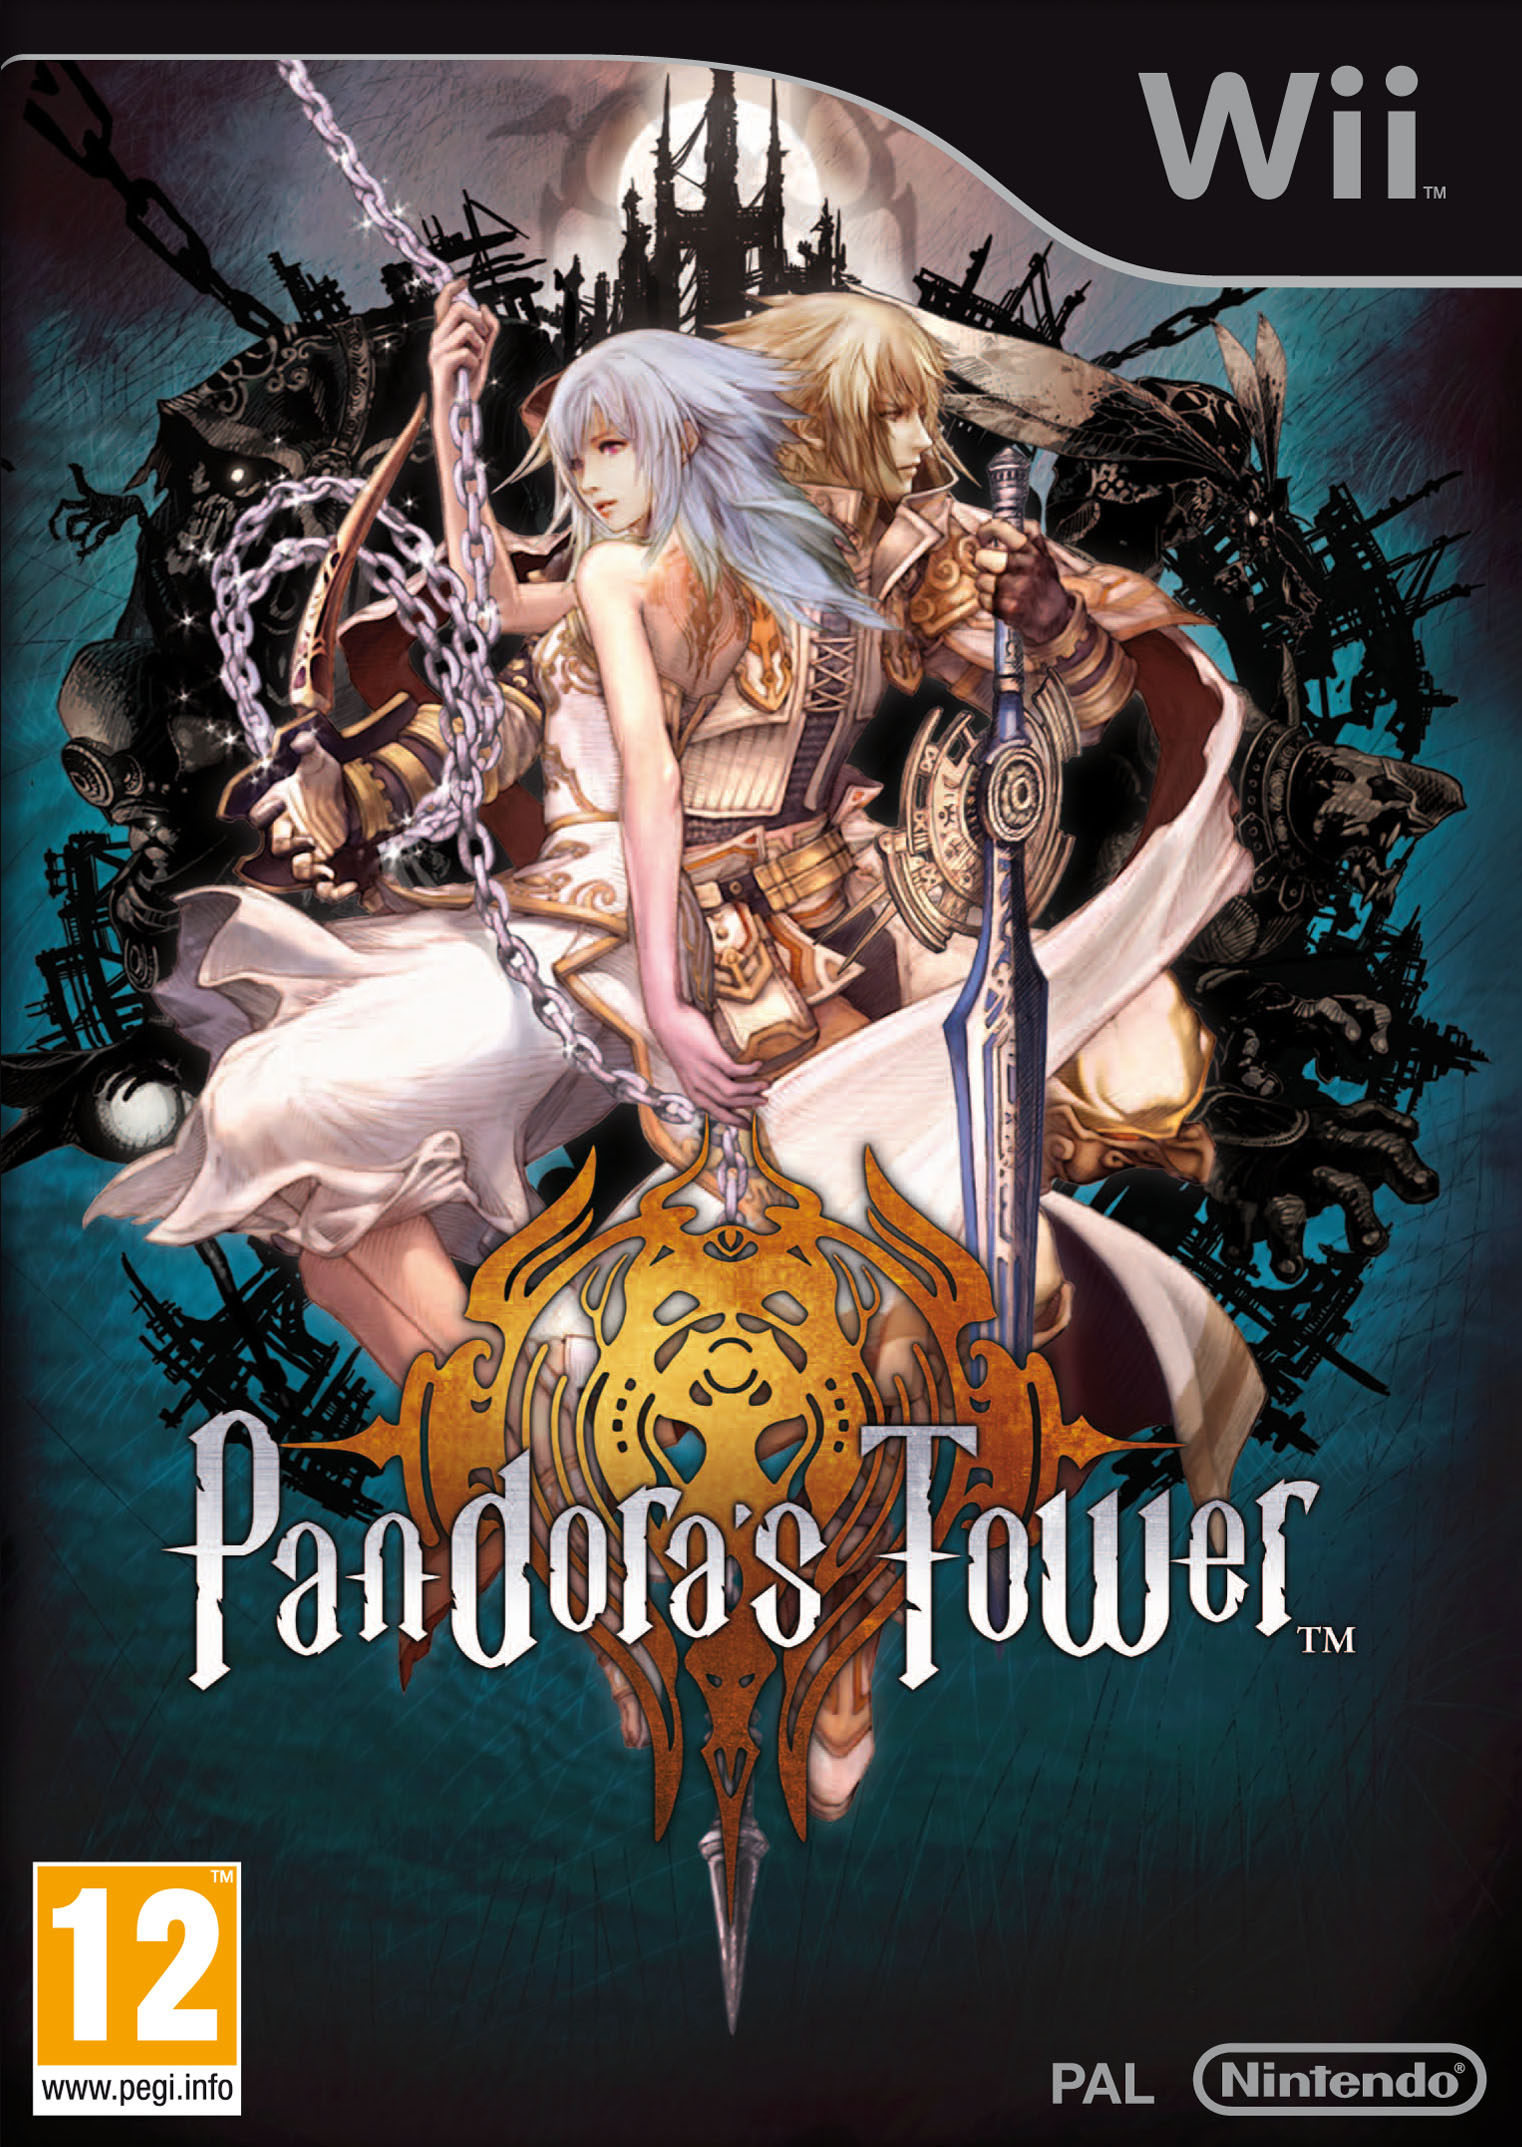 pandoras_tower_cover